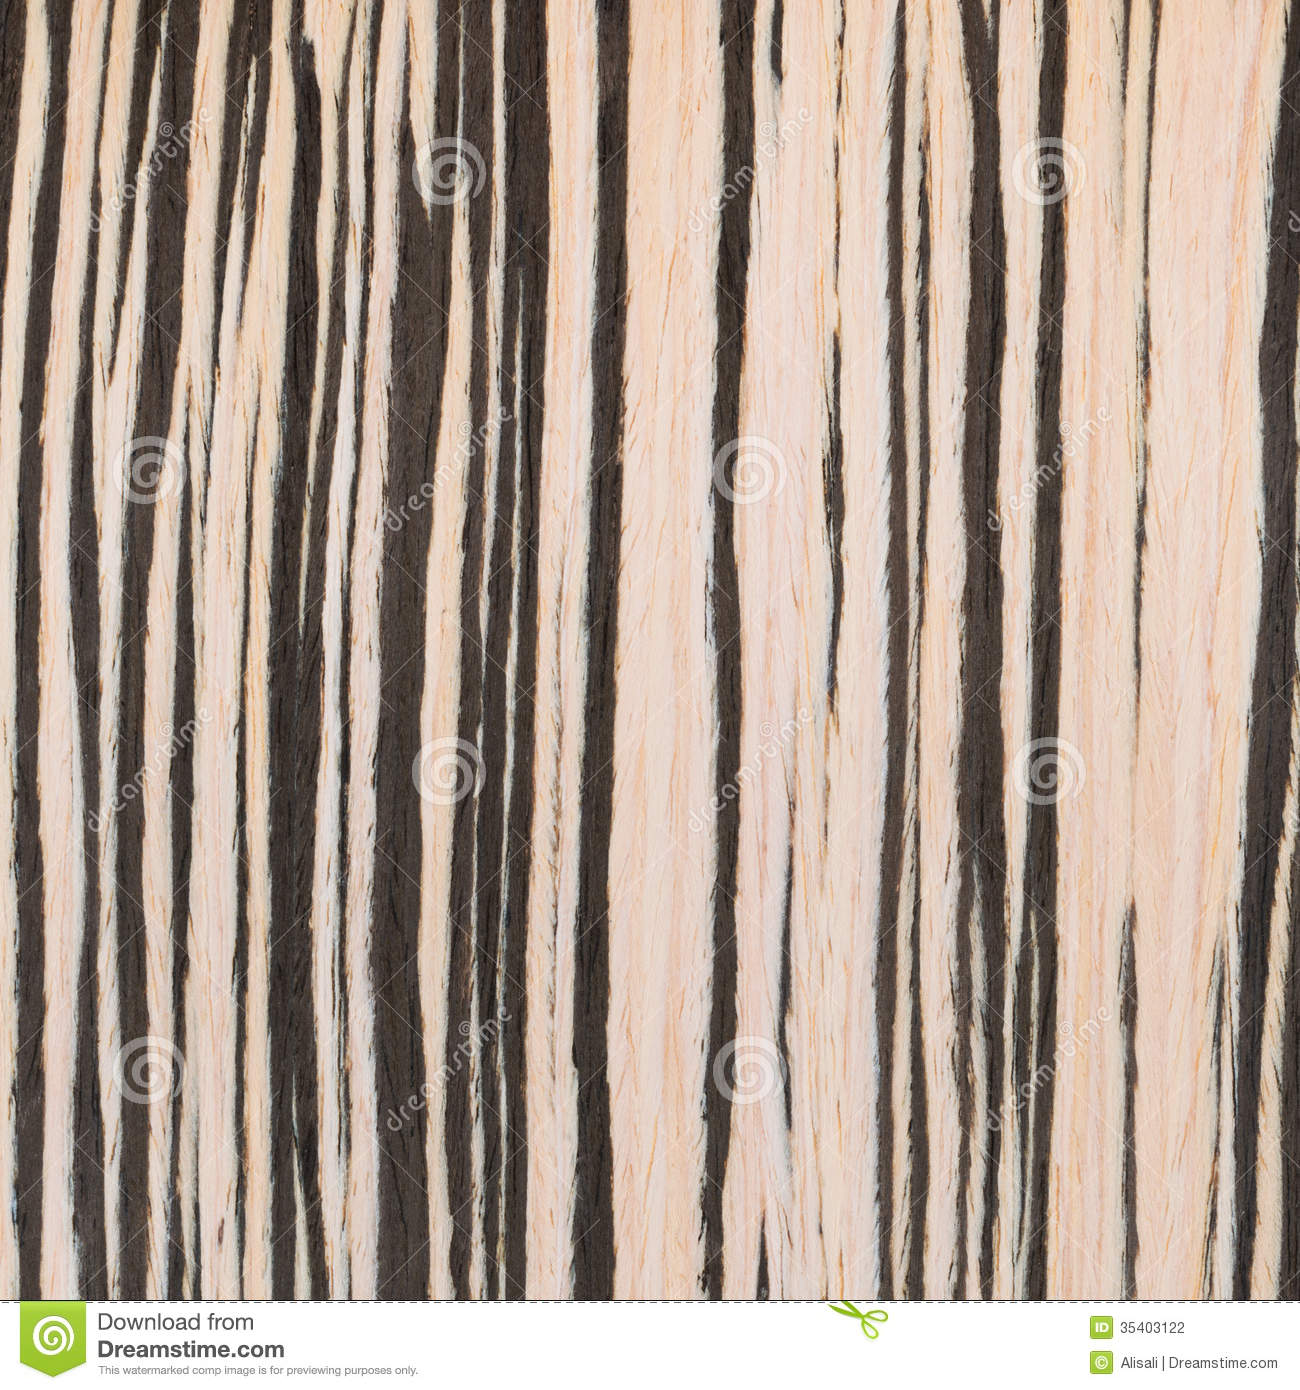 Zebrano Wood Texture, Wood Grain Stock Photography - Image: 35403122